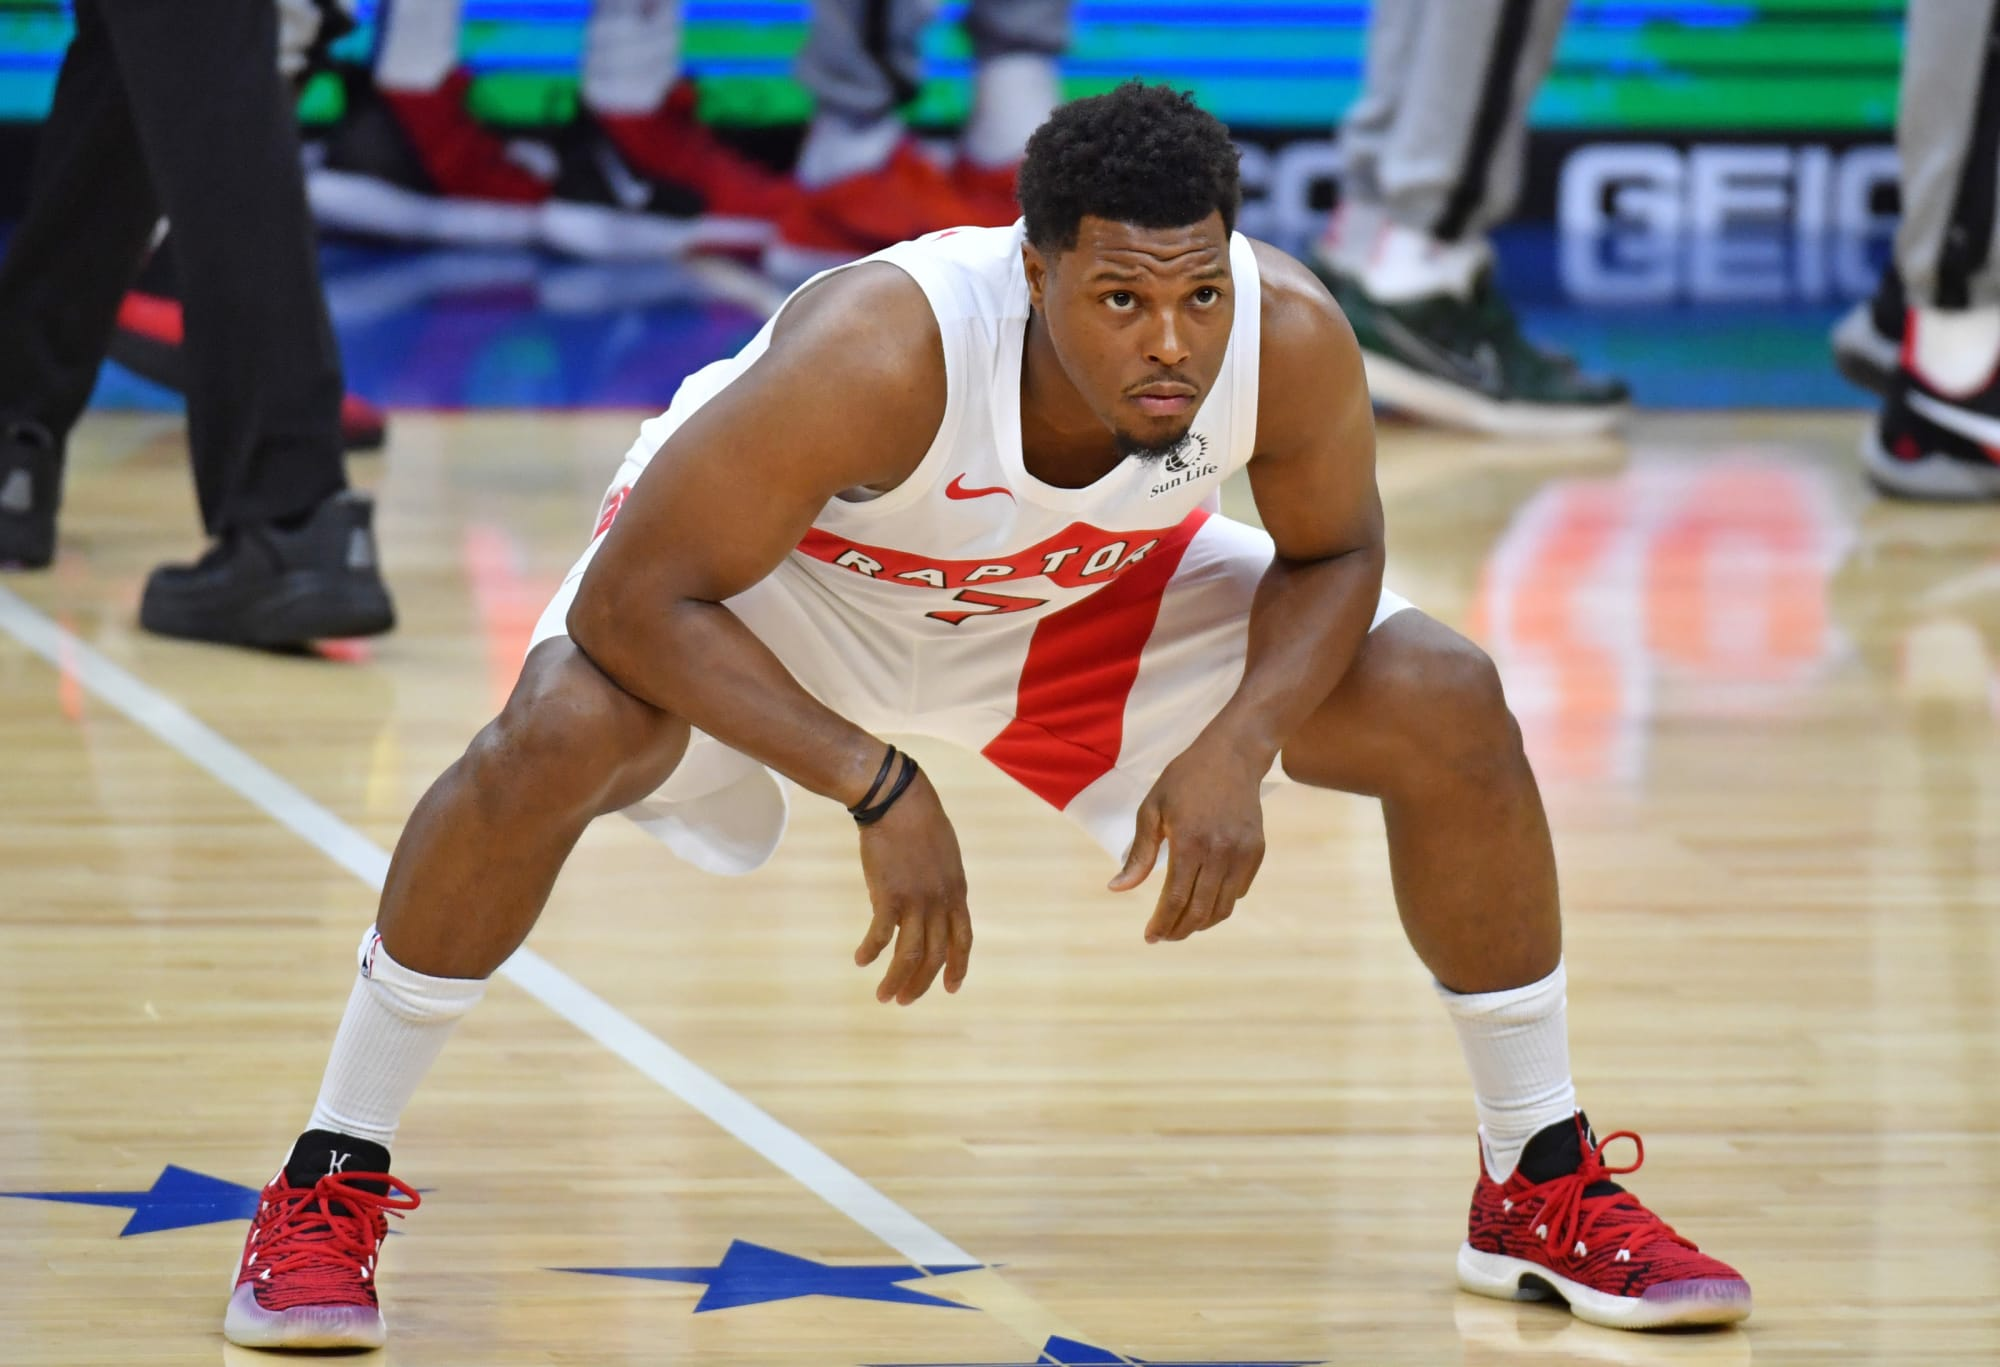 Mavericks rumors: Kyle Lowry expect to land with Heat in sign-and-trade